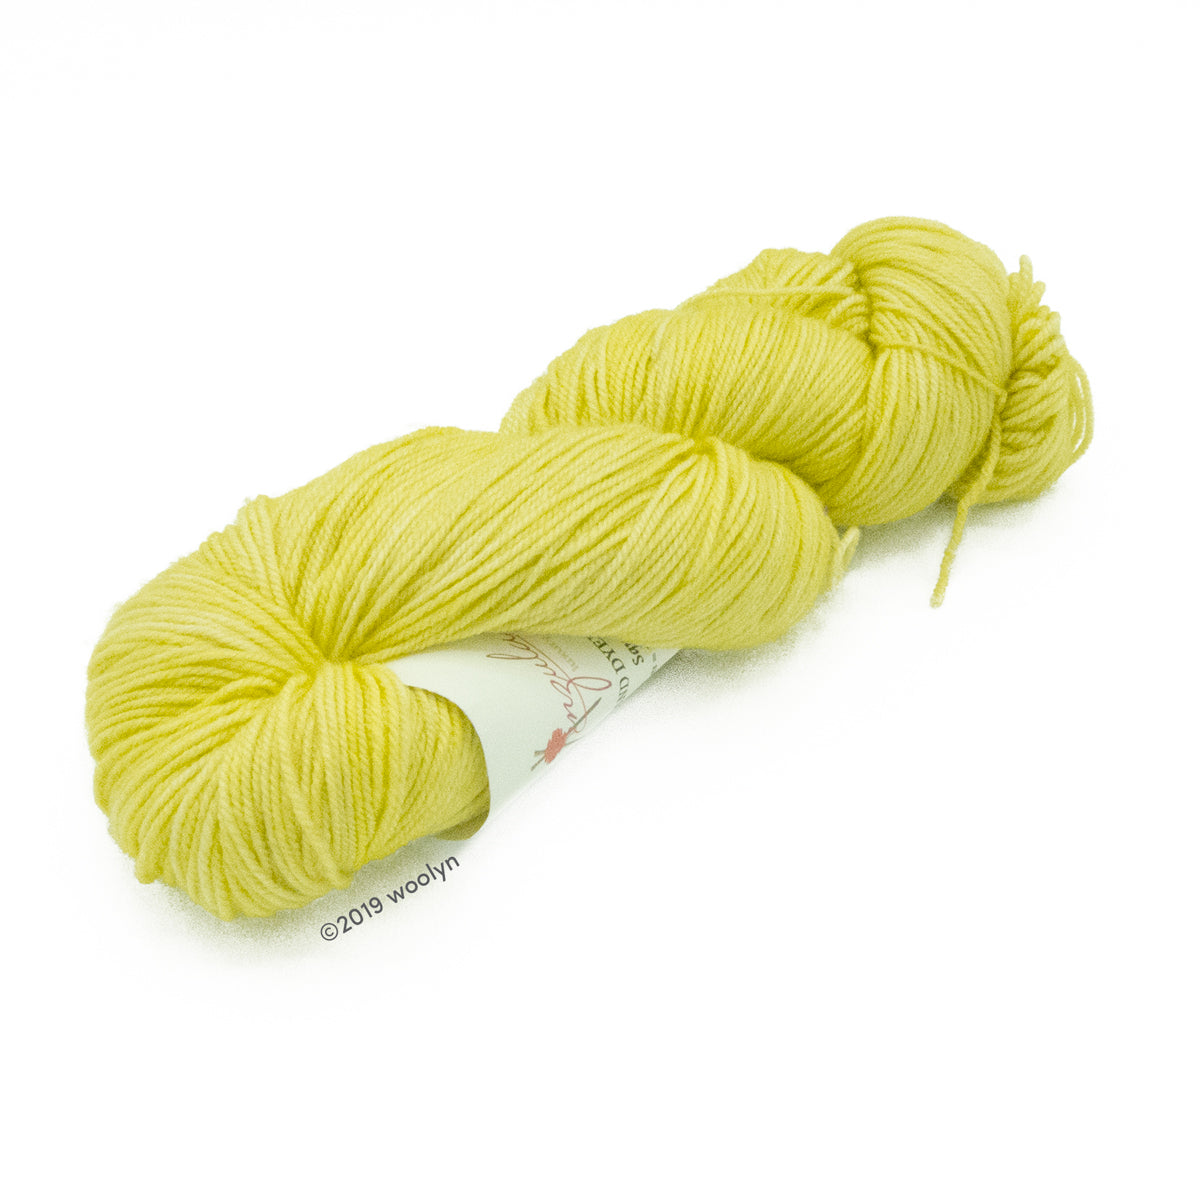 Hand dyed  fingering weight yarn in bright, light yellow tonal shades twisted into a skein.